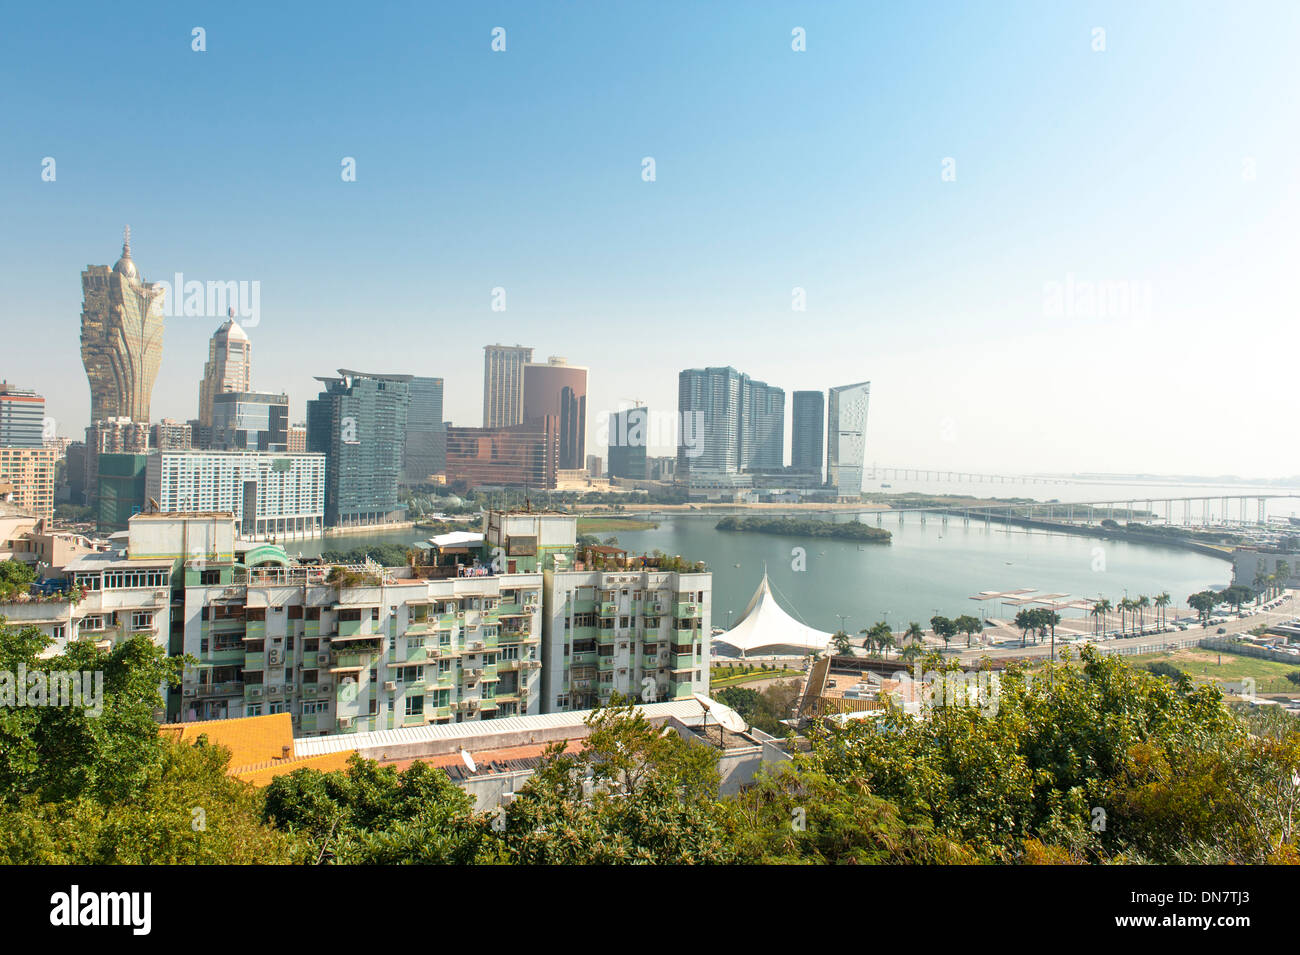 Daytime skyline with casinos seen from Penha hill at Macau (Macao), SAR of China - Stock Image